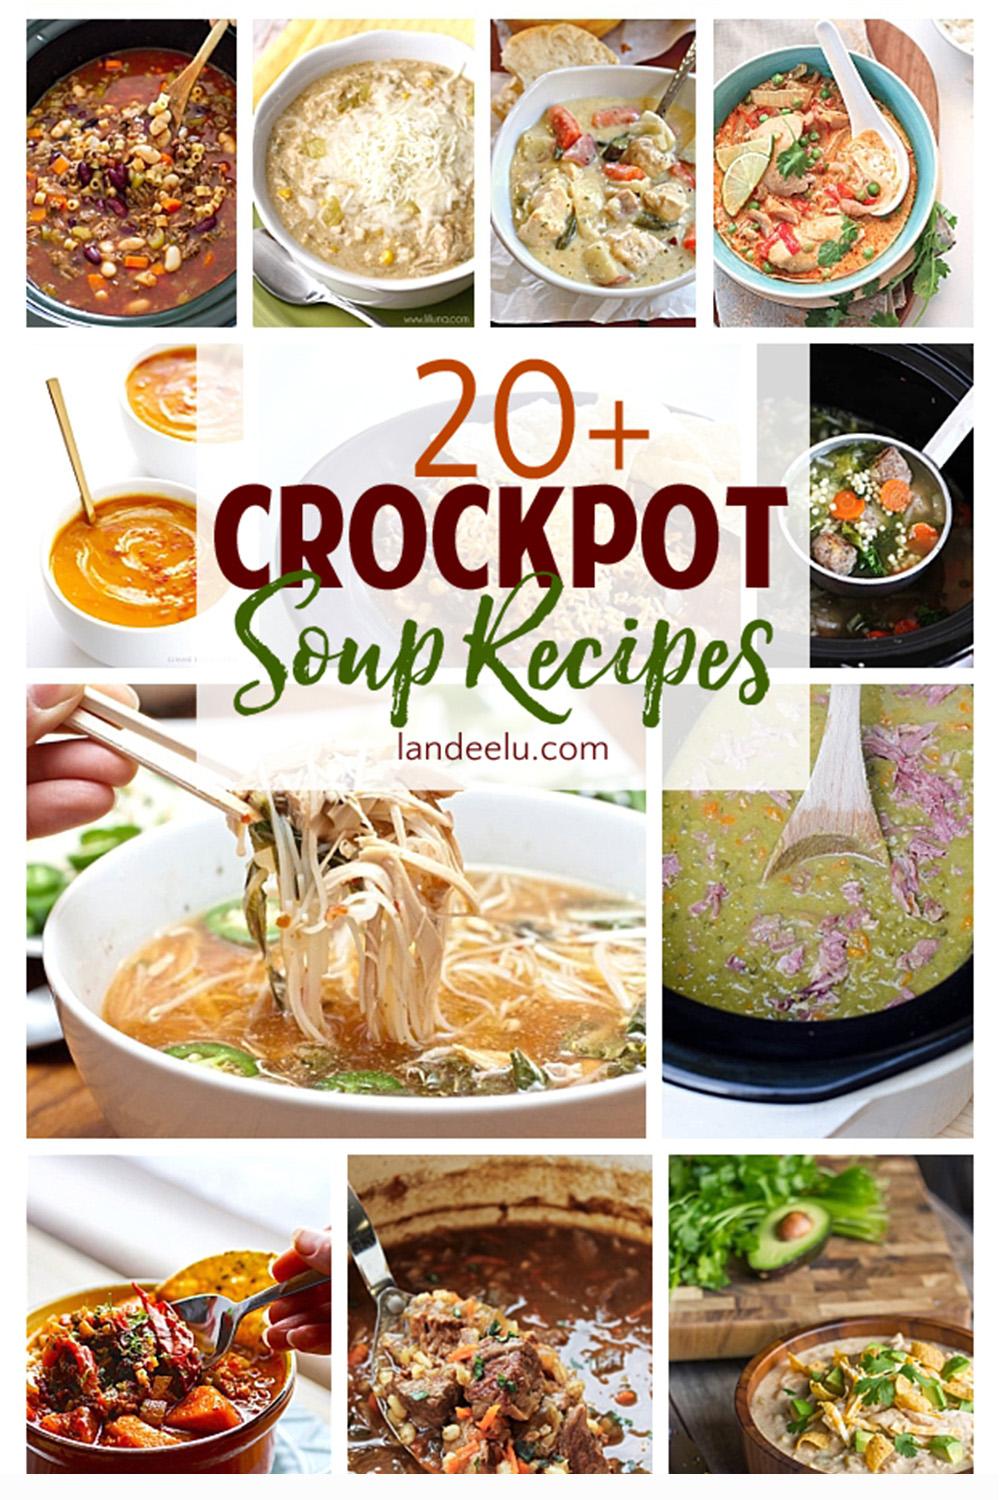 Crockpot Soup Recipes Perfect For Fall Landeelu Com